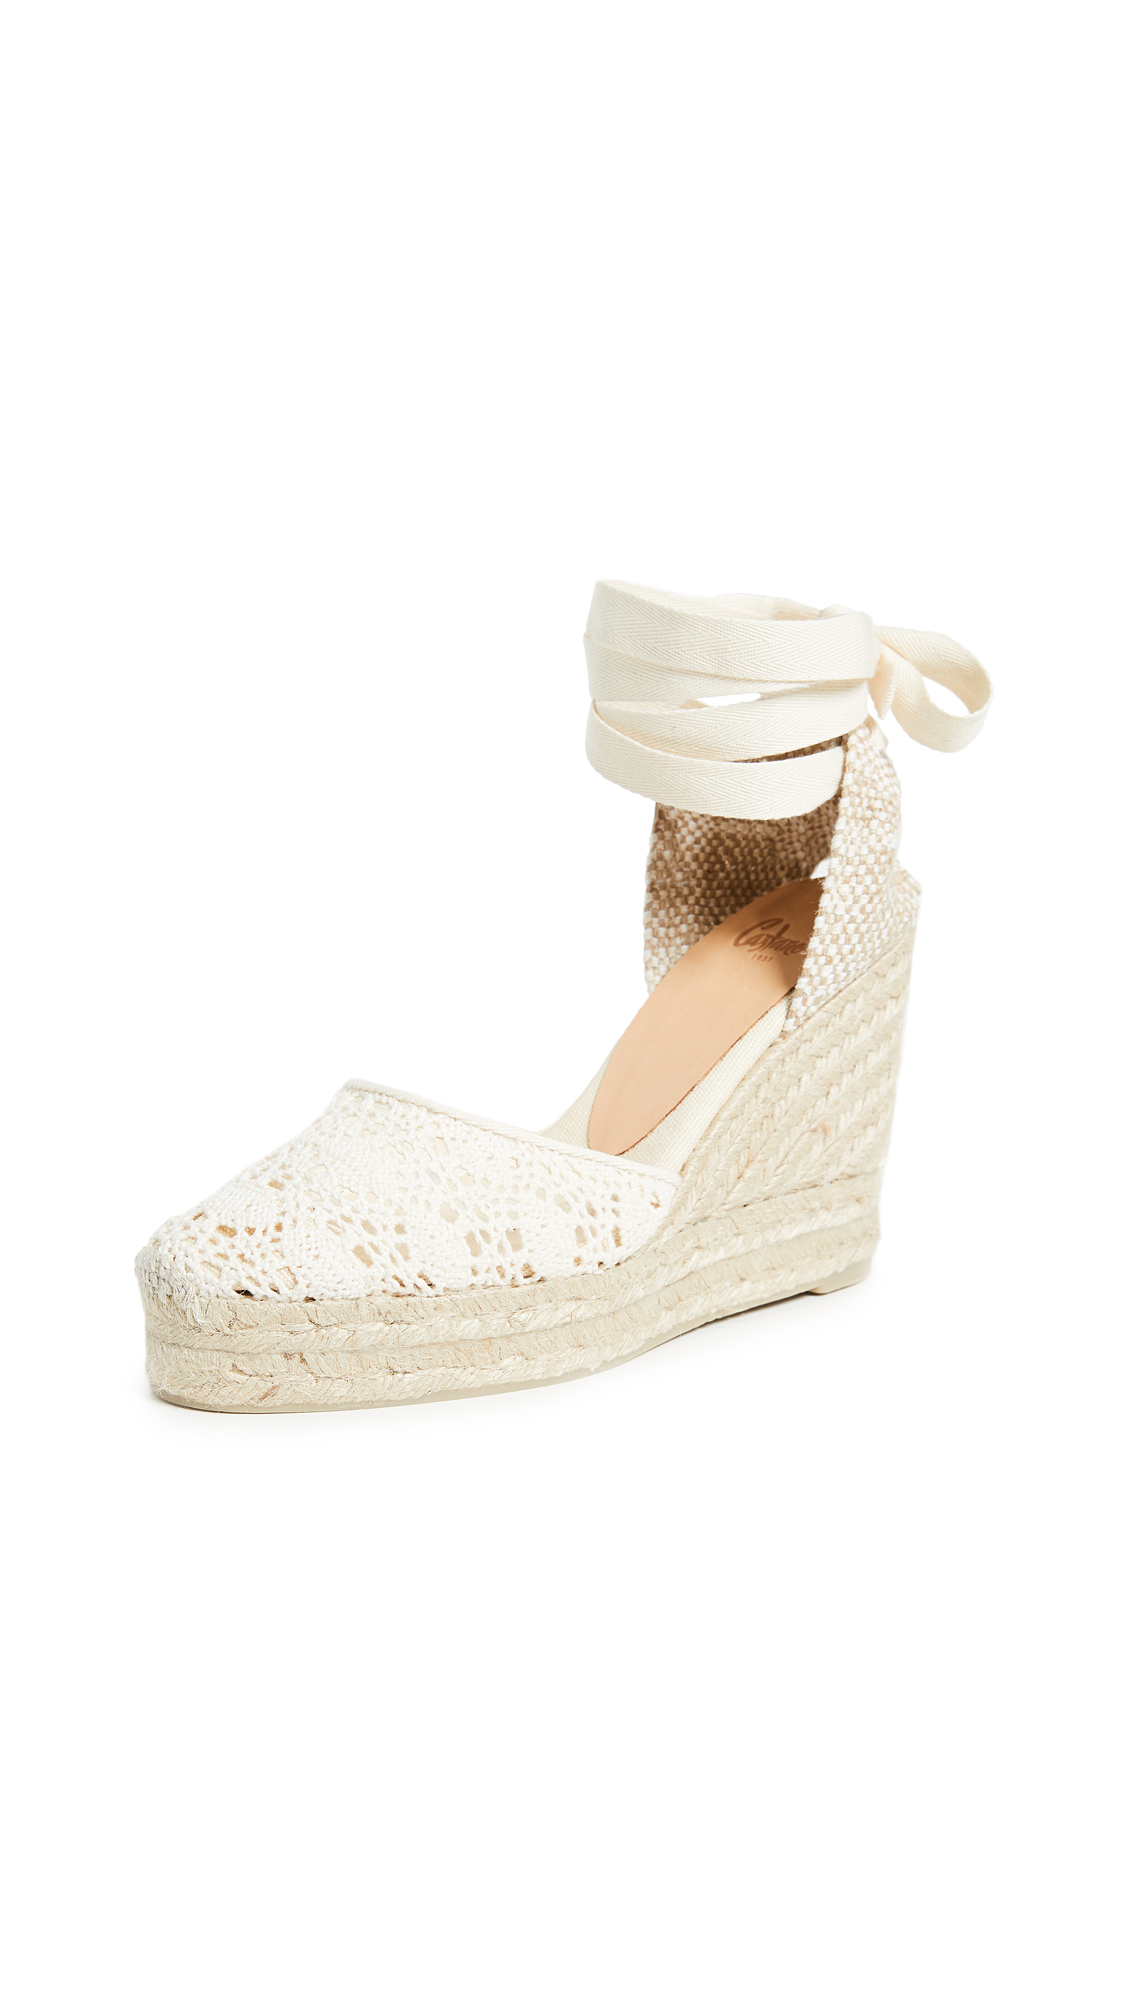 Castaner Carina Eyelet Wedges - Natural